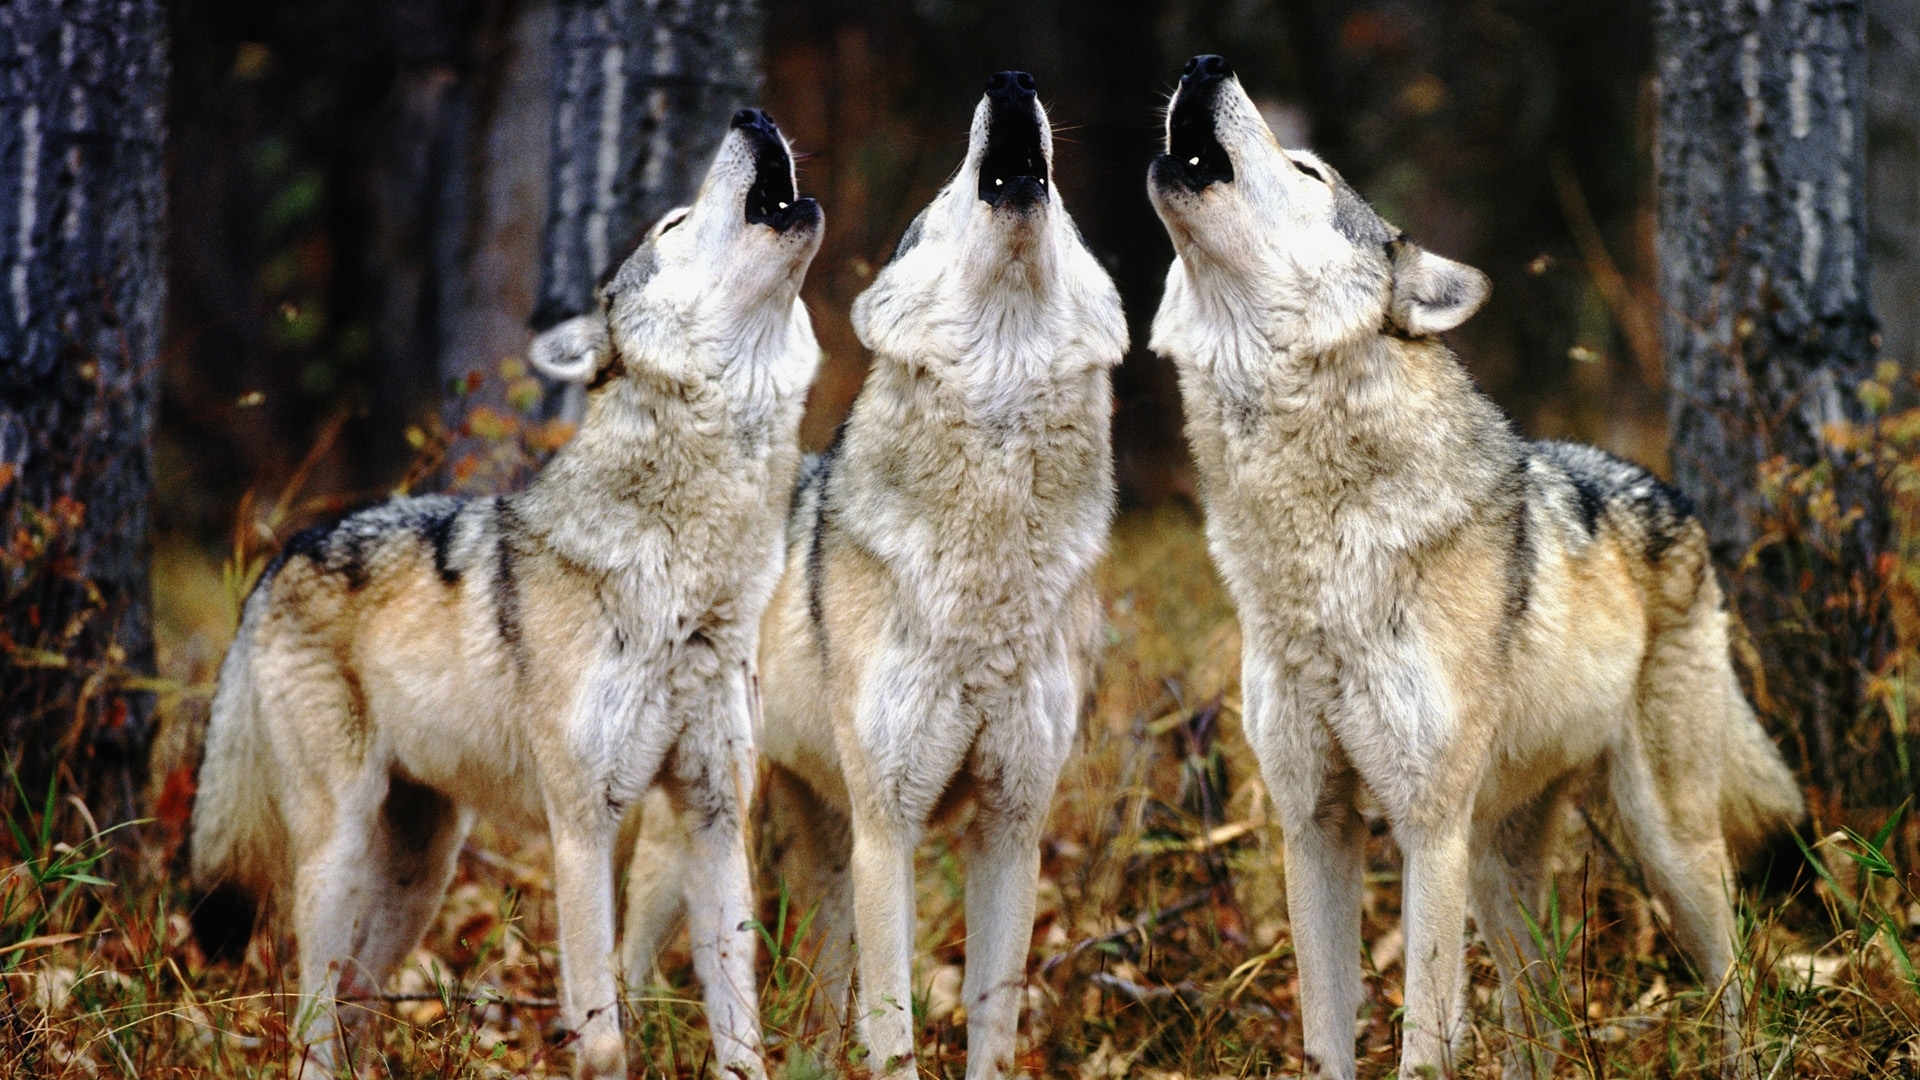 31574 download wallpaper Animals, Wolfs screensavers and pictures for free